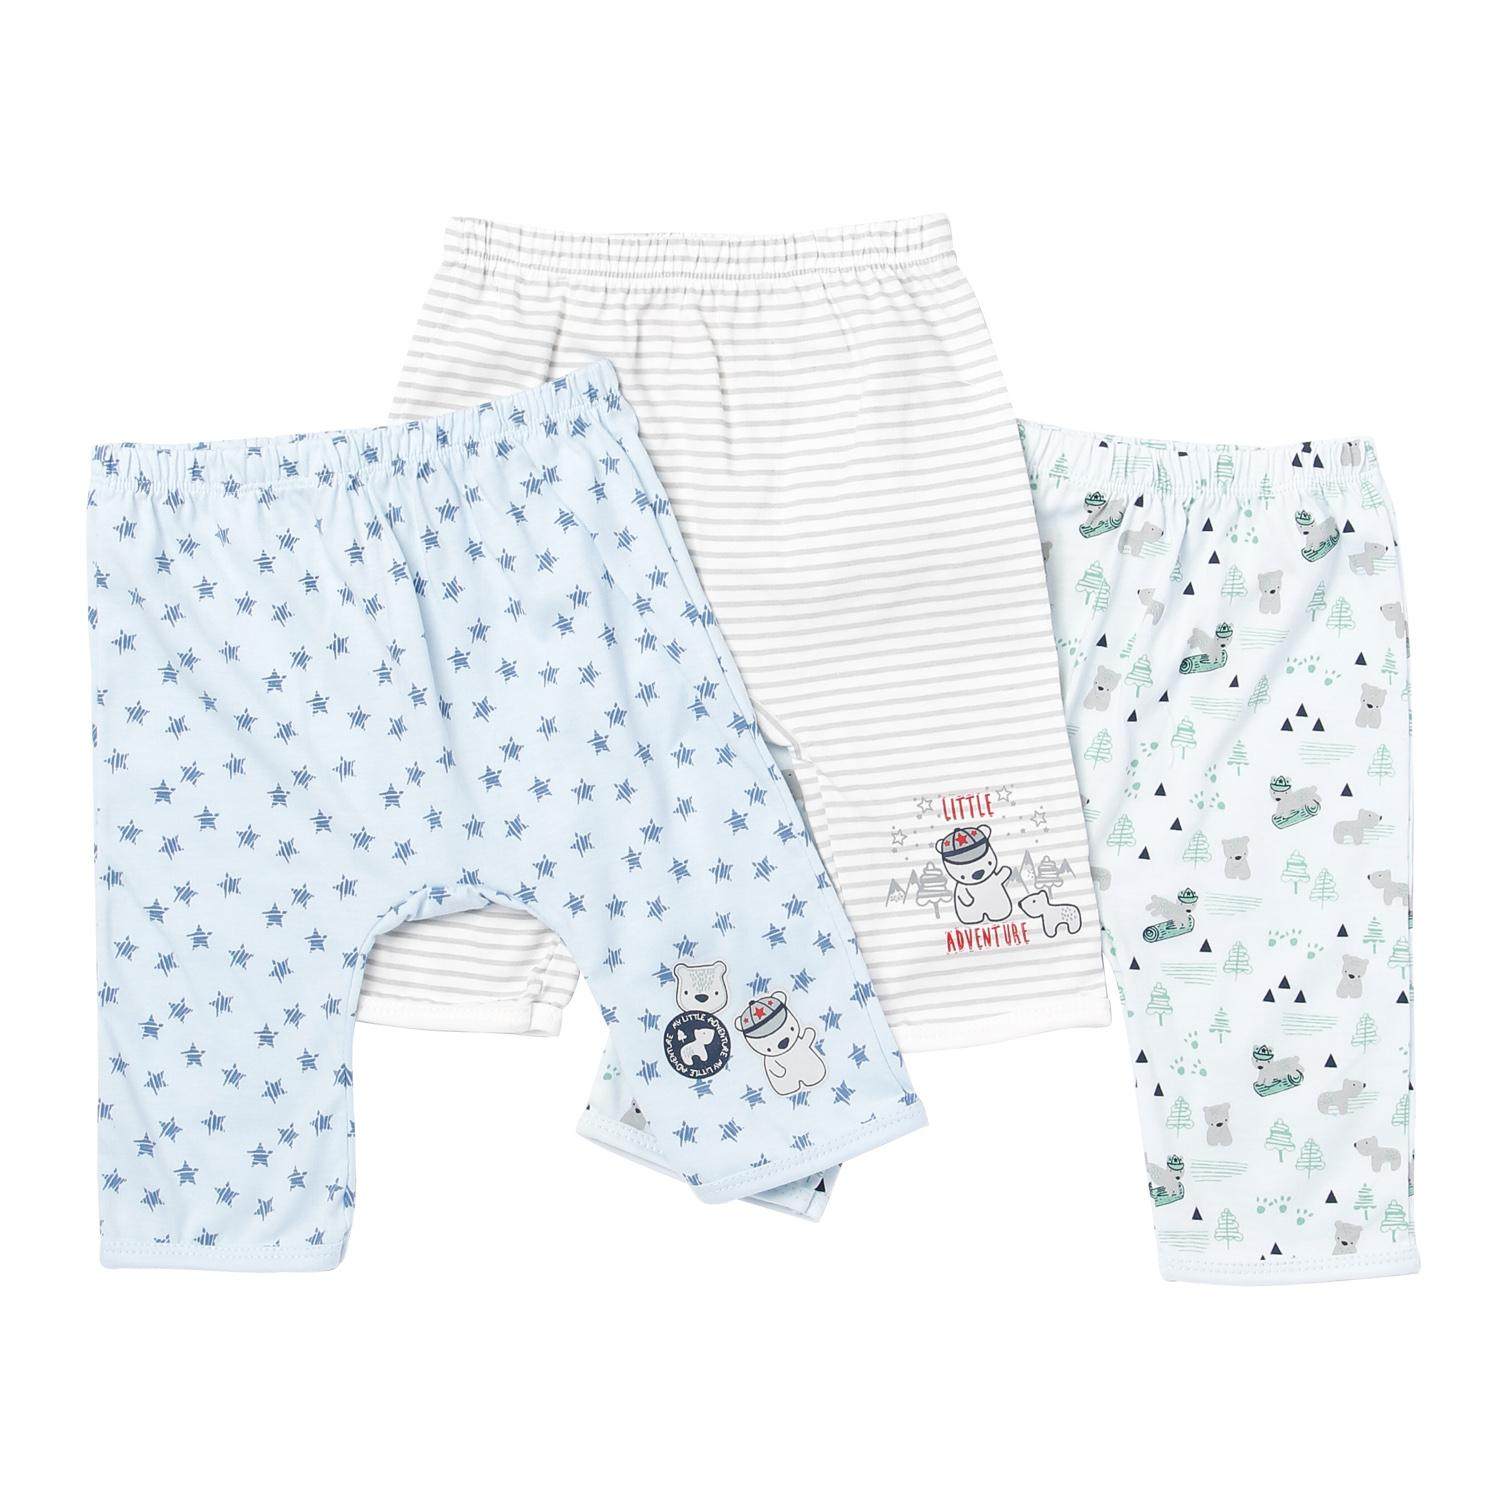 582388256d1a Boys Sleepwear for sale - Baby Sleepwear for Boys online brands ...